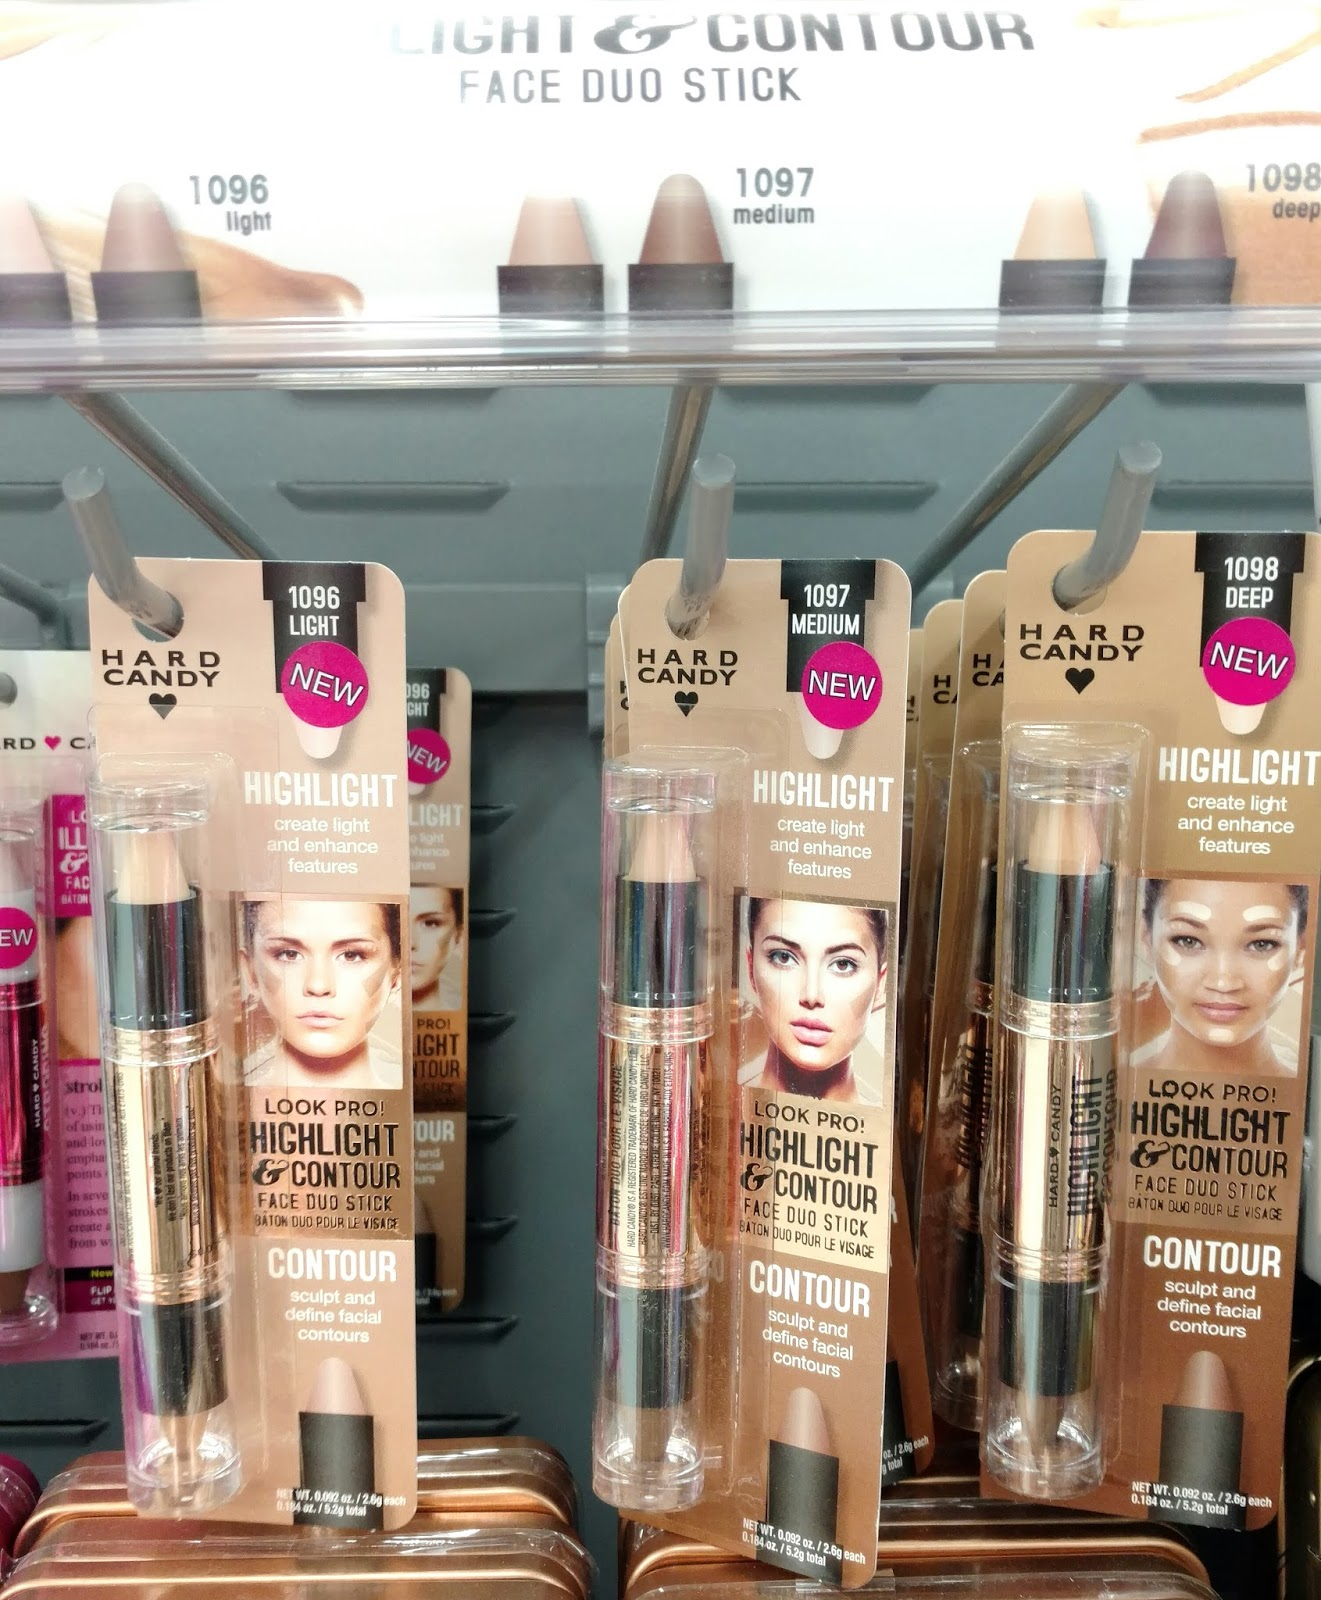 contour makeup kit walmart. highlight \u0026 contour face duo stick makeup kit walmart